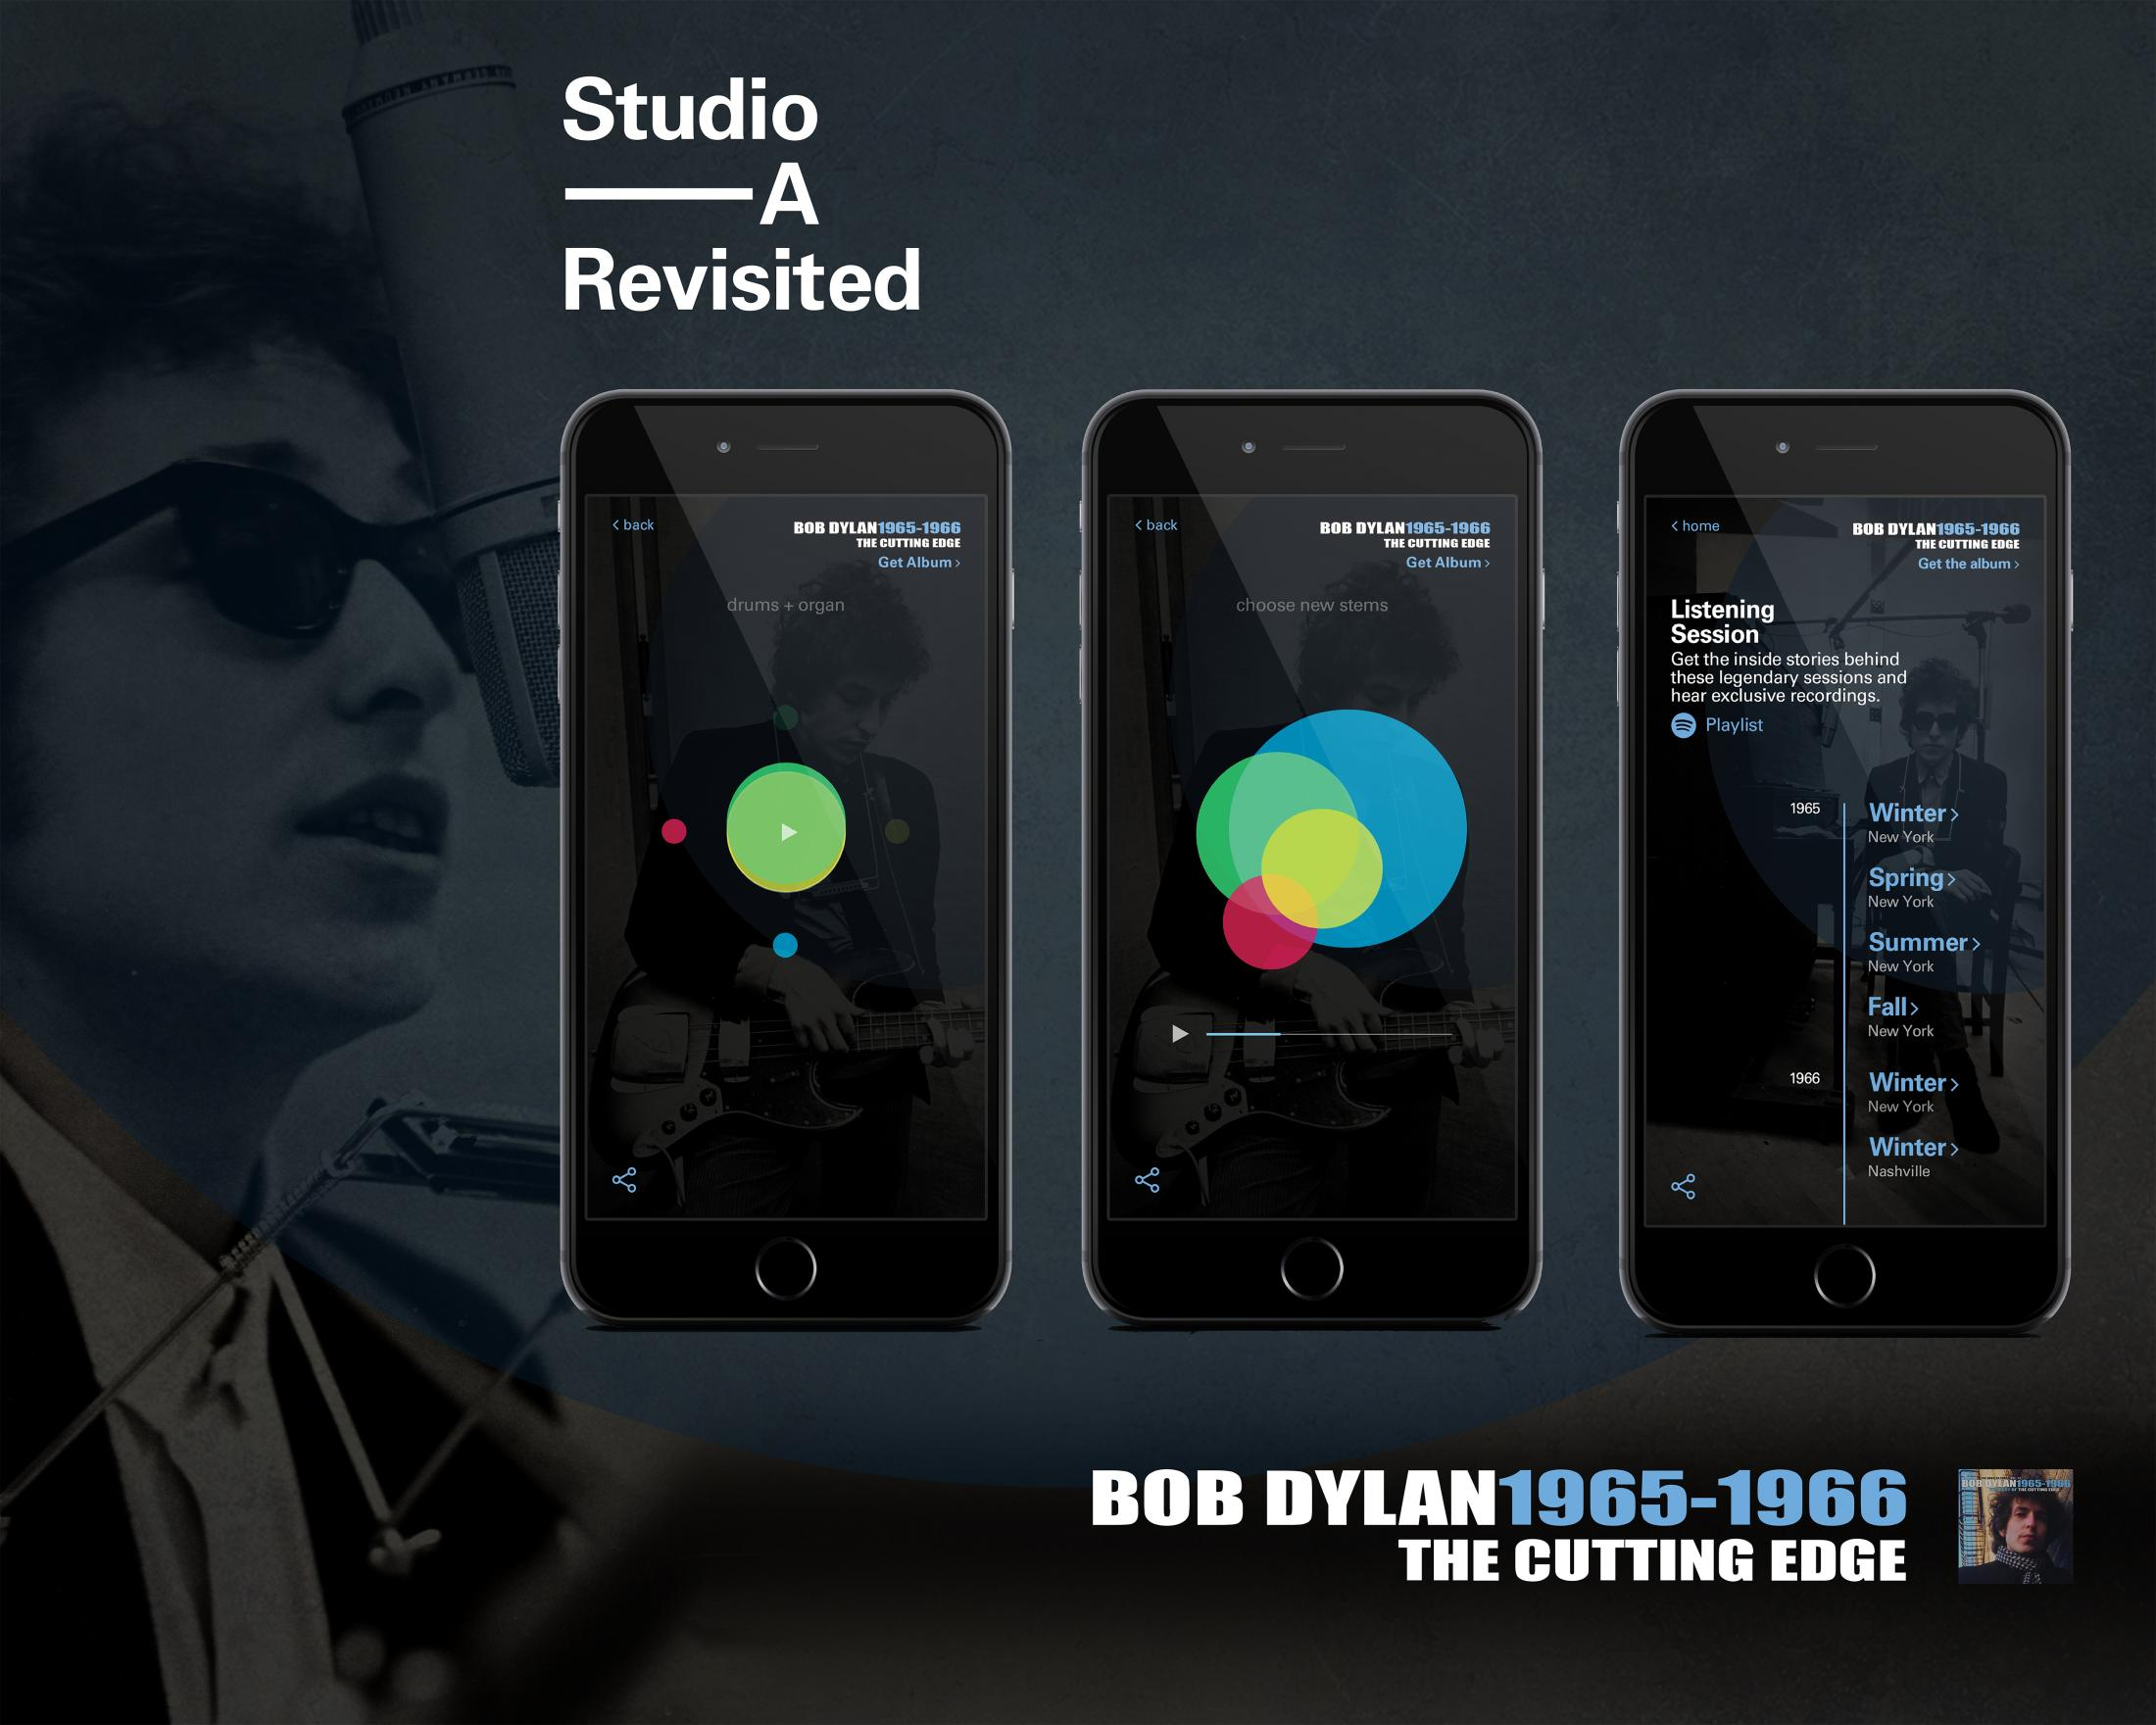 Thumbnail for Bob Dylan: Studio A Revisited